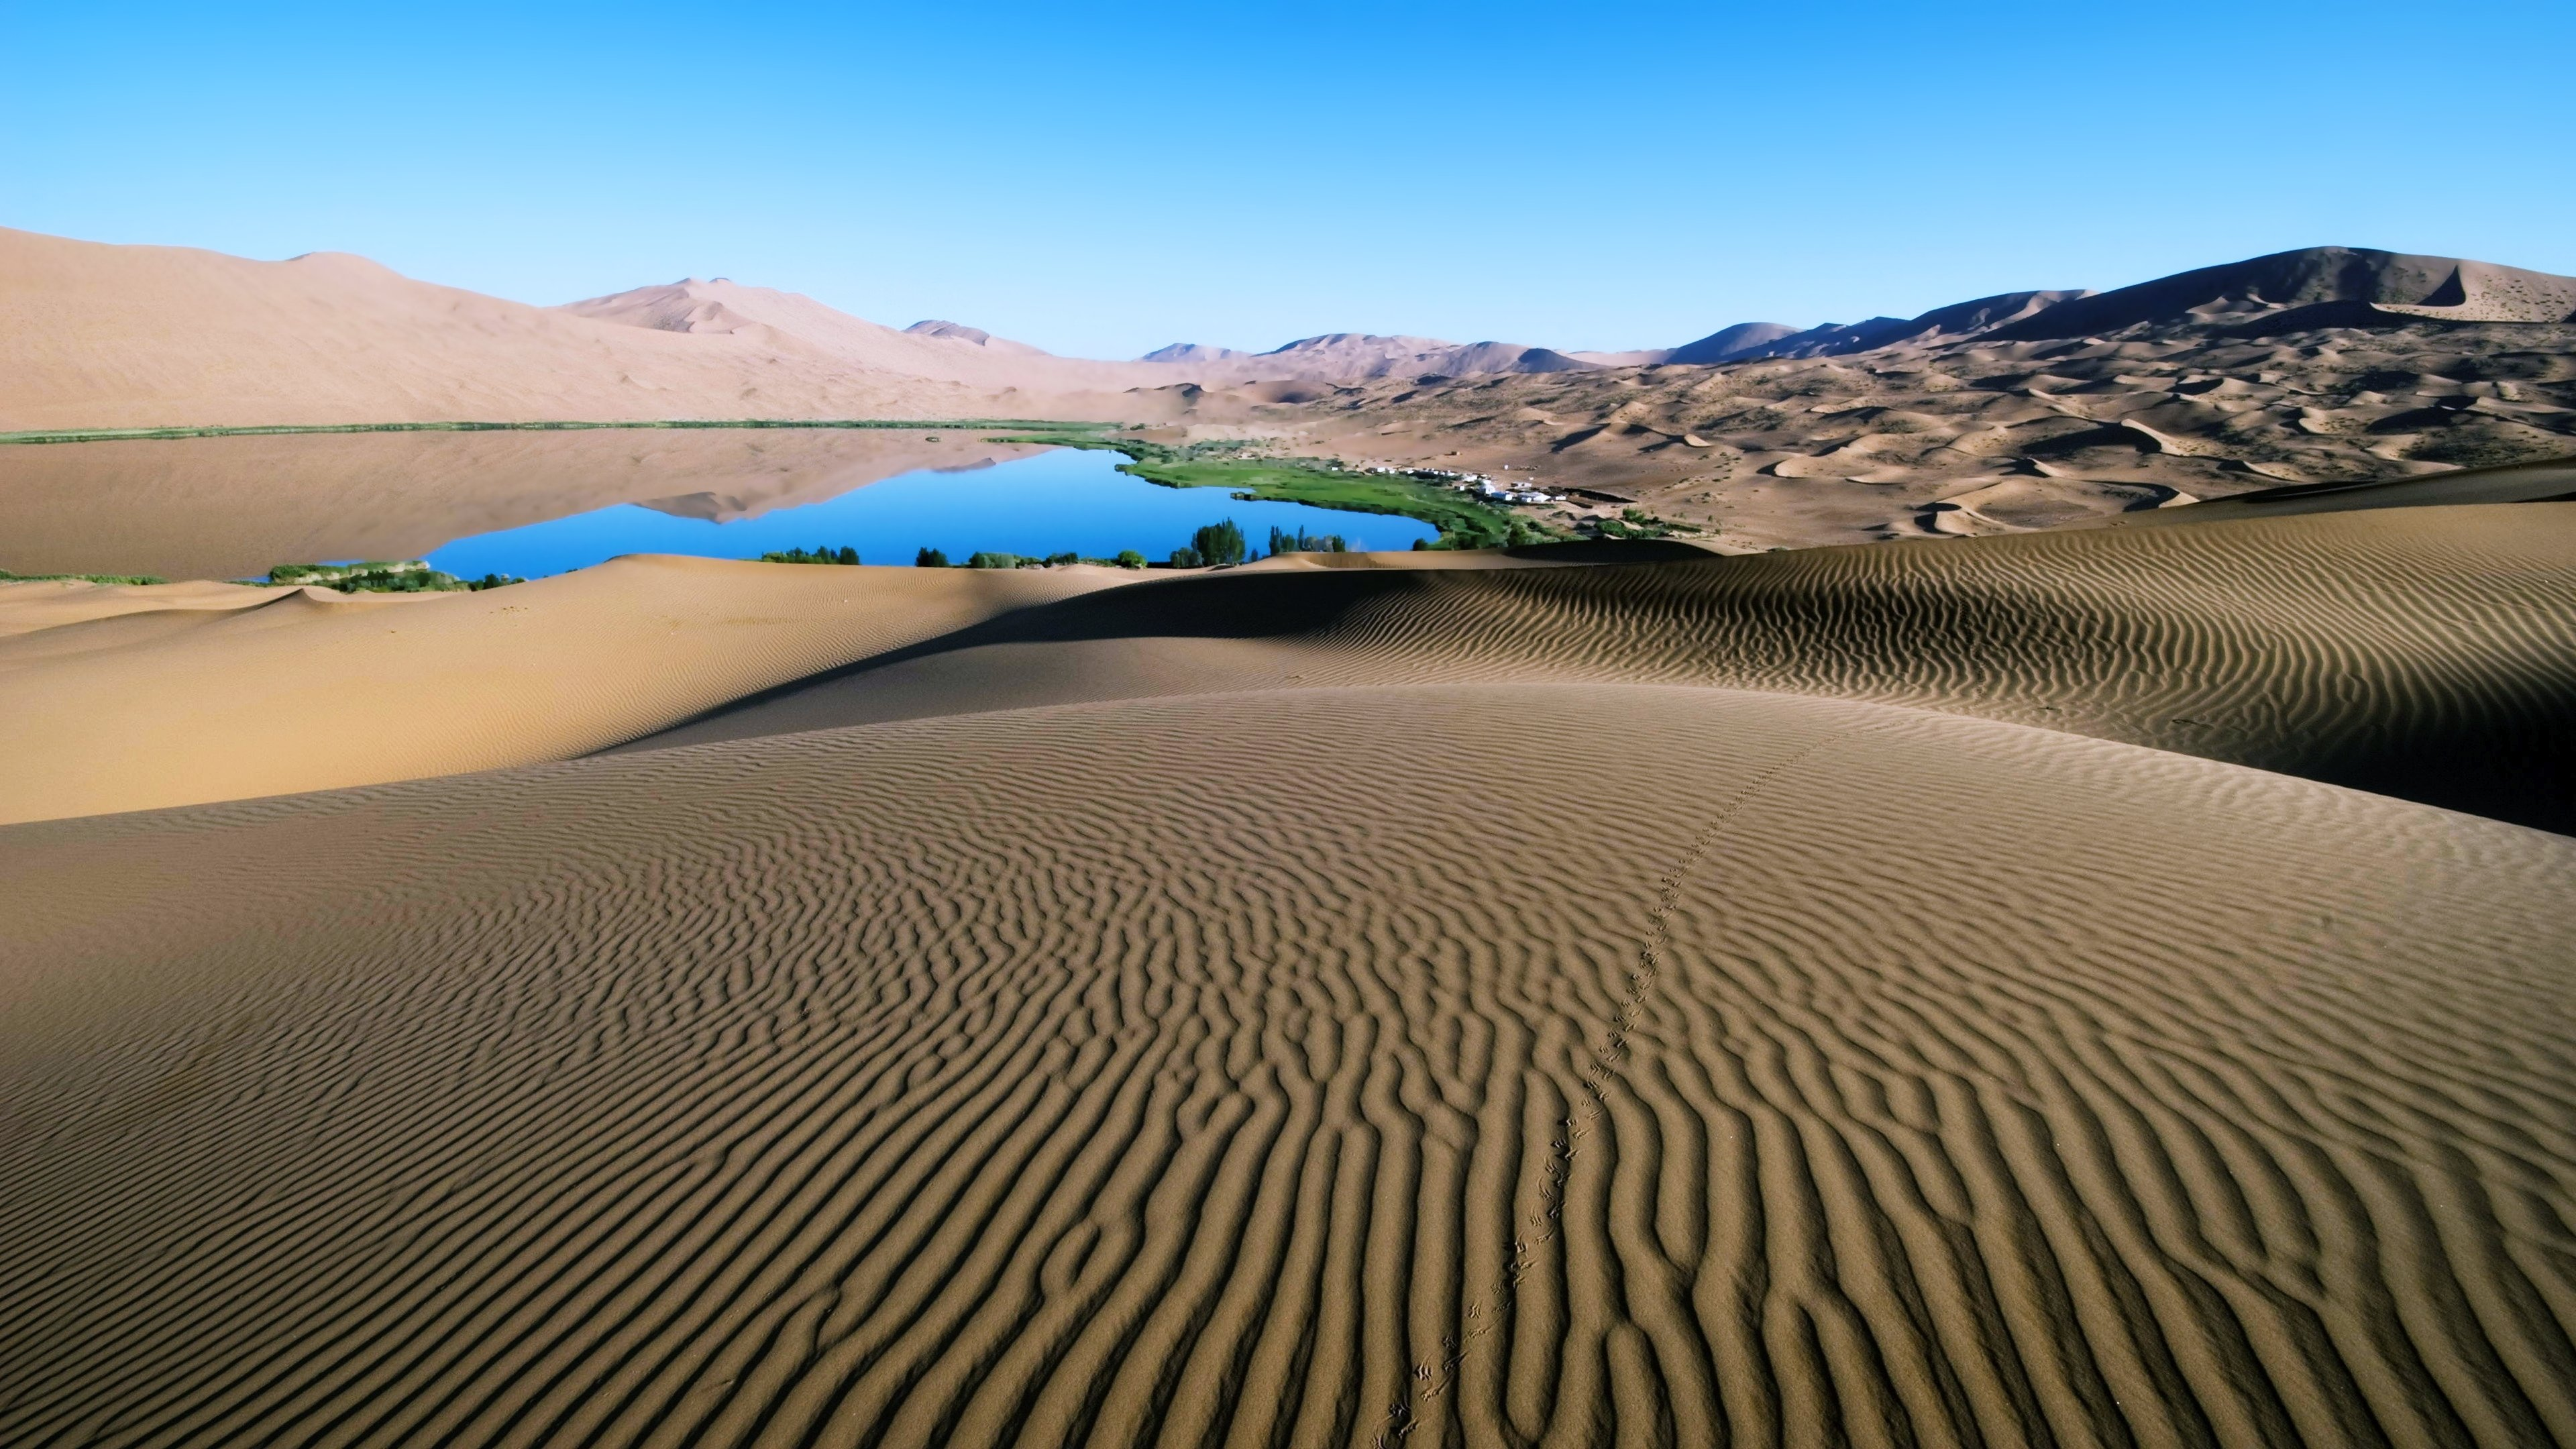 Desert lakes sand sky sunny landscapes africa oasis water nature earth wallpaper | 3840x2160 ...